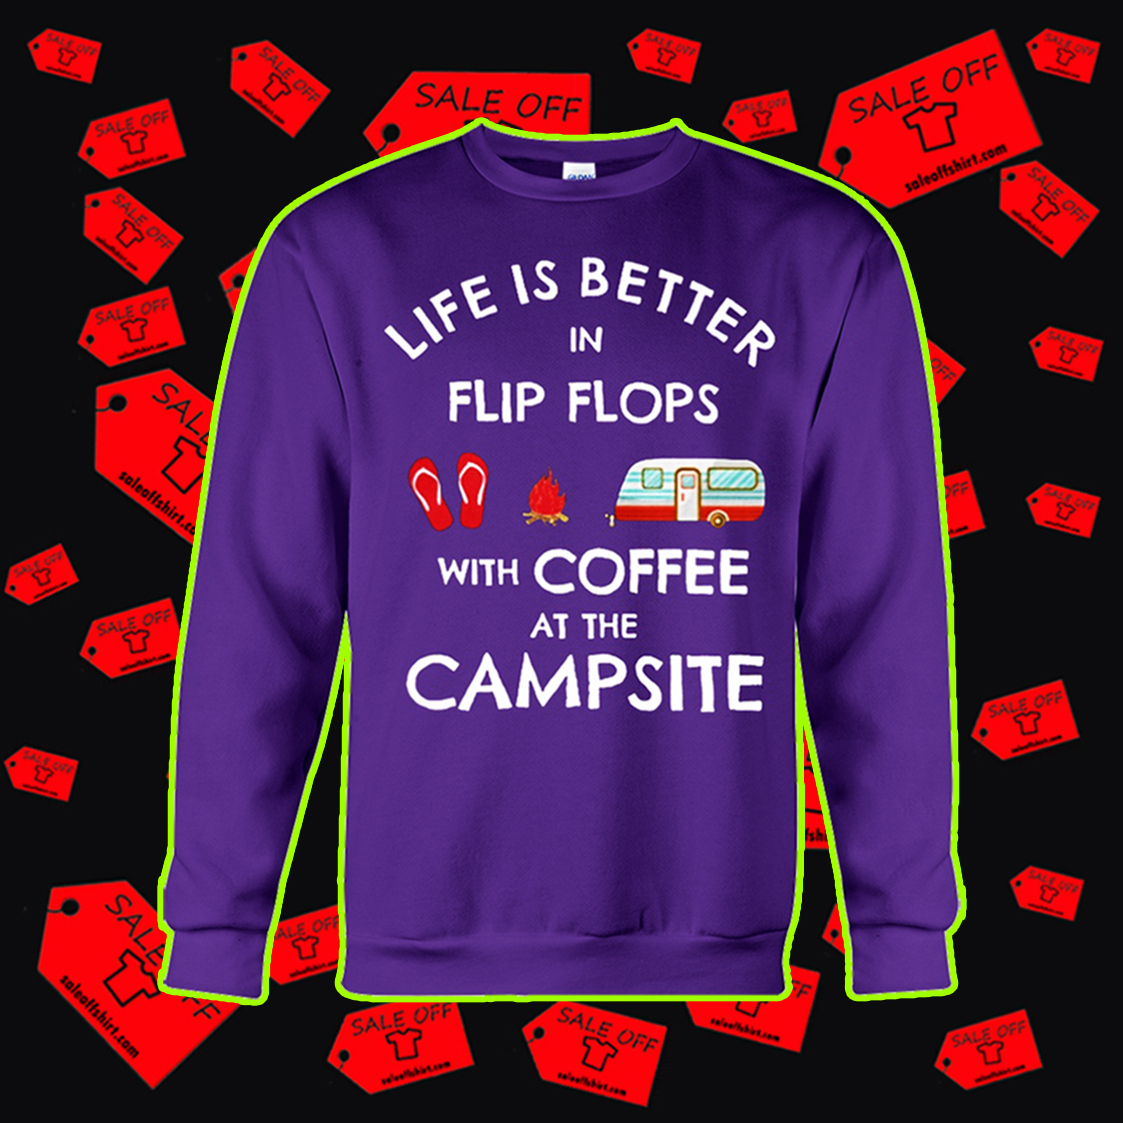 Life is better in flip flops with coffee at the campsite sweatshirt